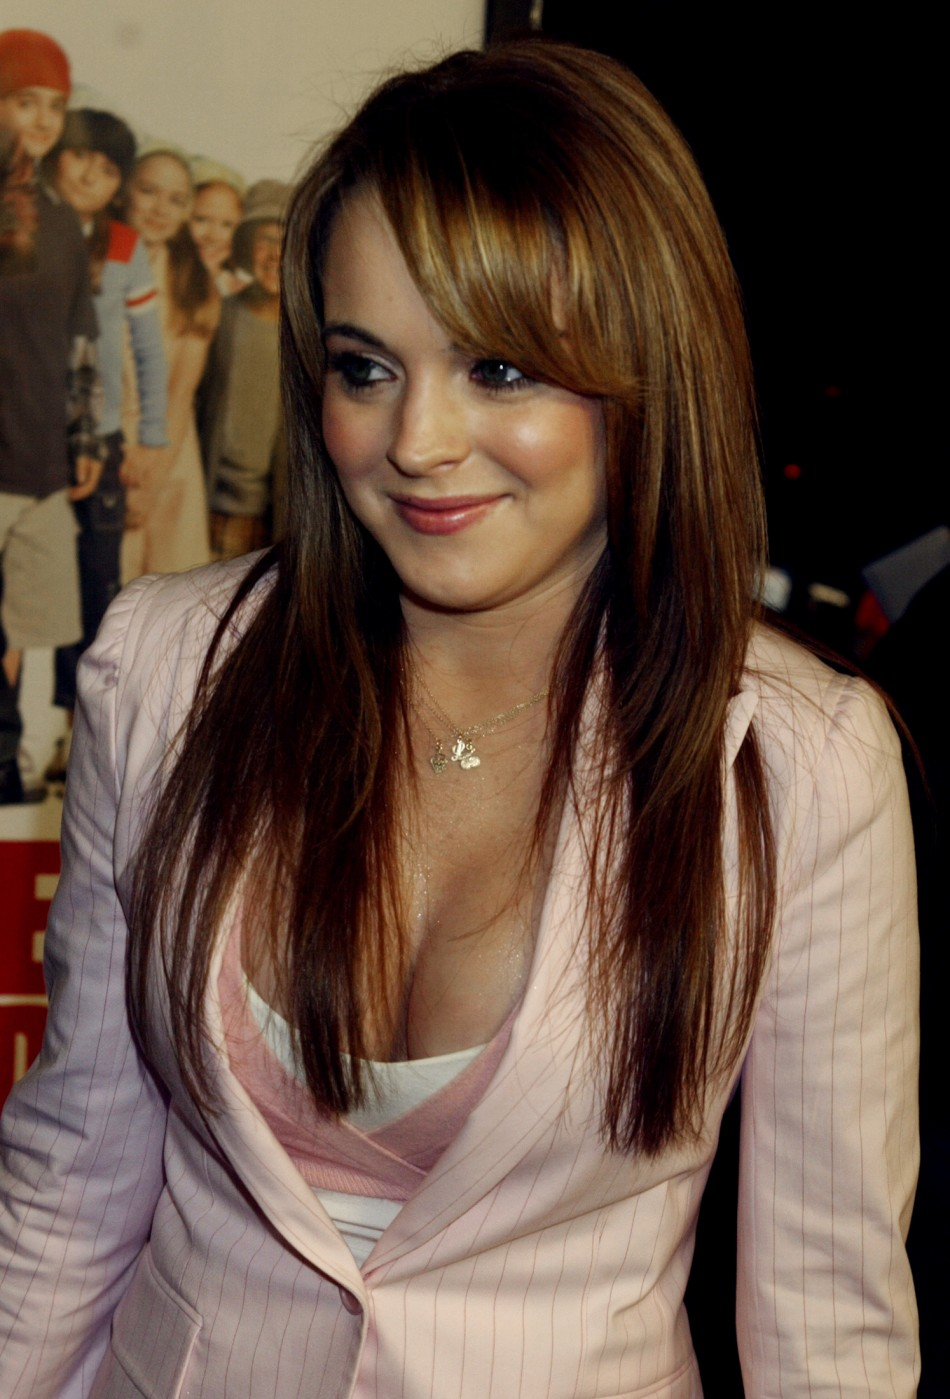 Lindsay Lohan in 2003 - Gorgeous With Auburn Locks